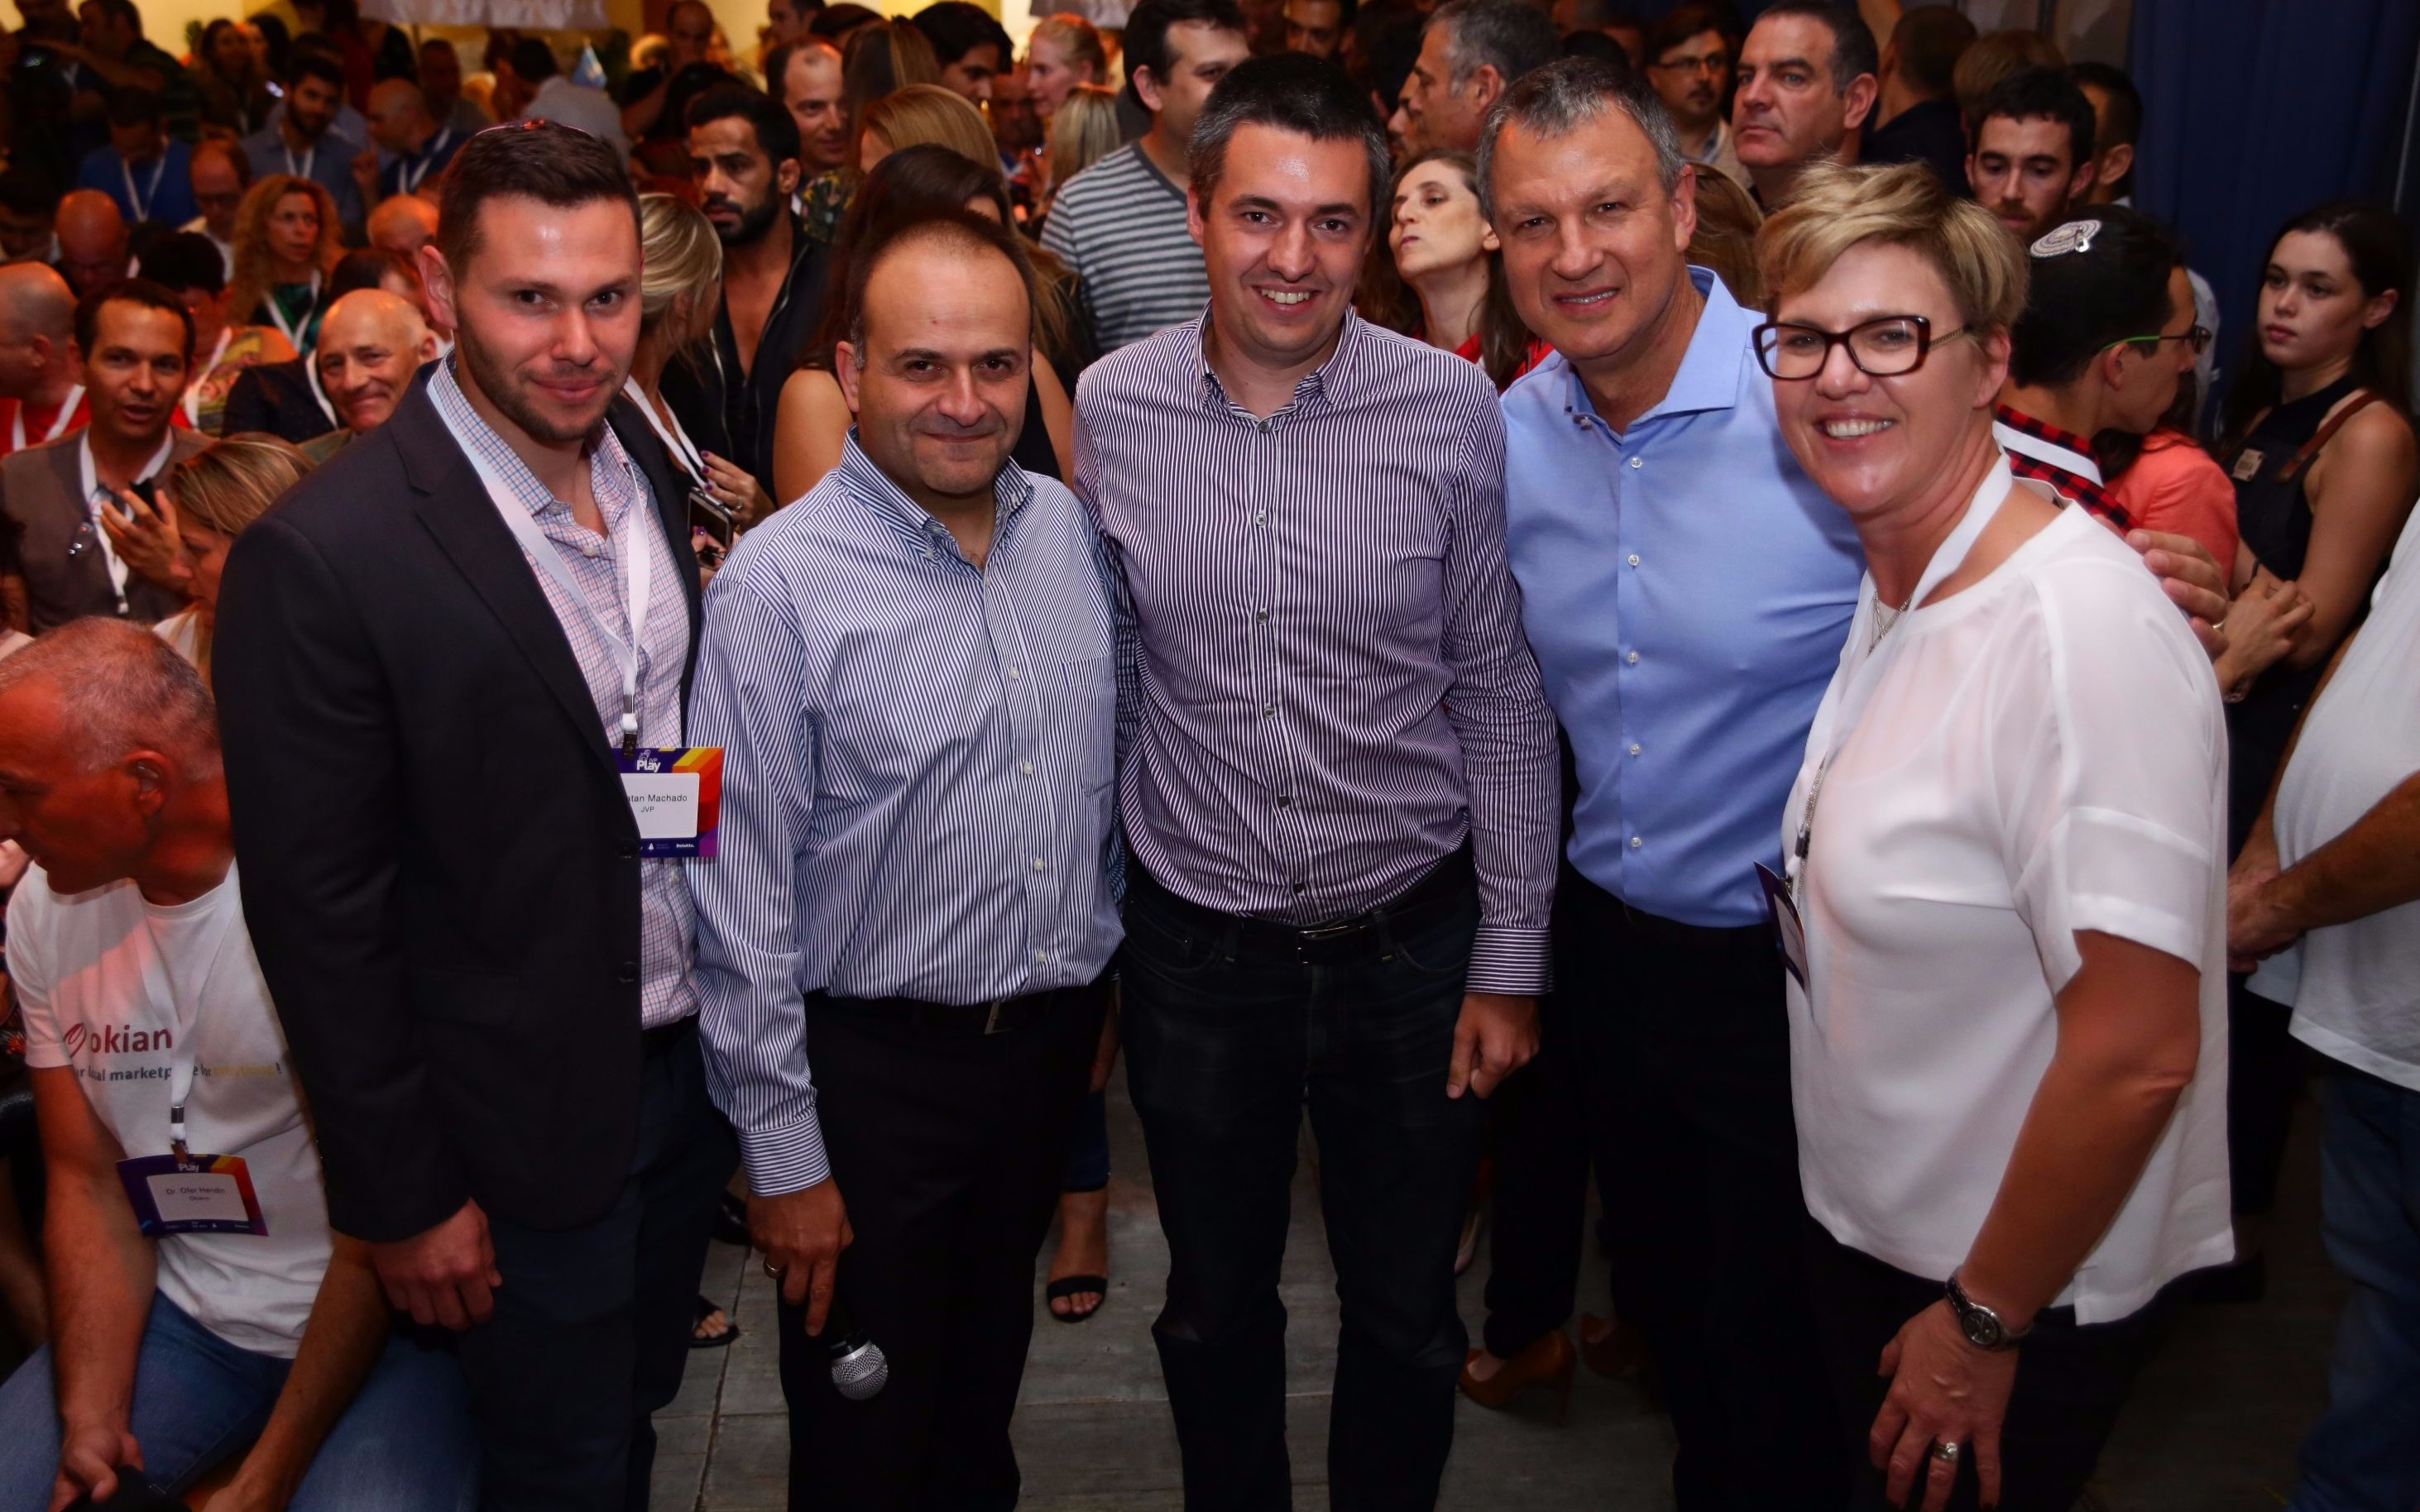 JVP selects 10 Israeli startups for mentorship with Tesco, PepsiCo, Barclays